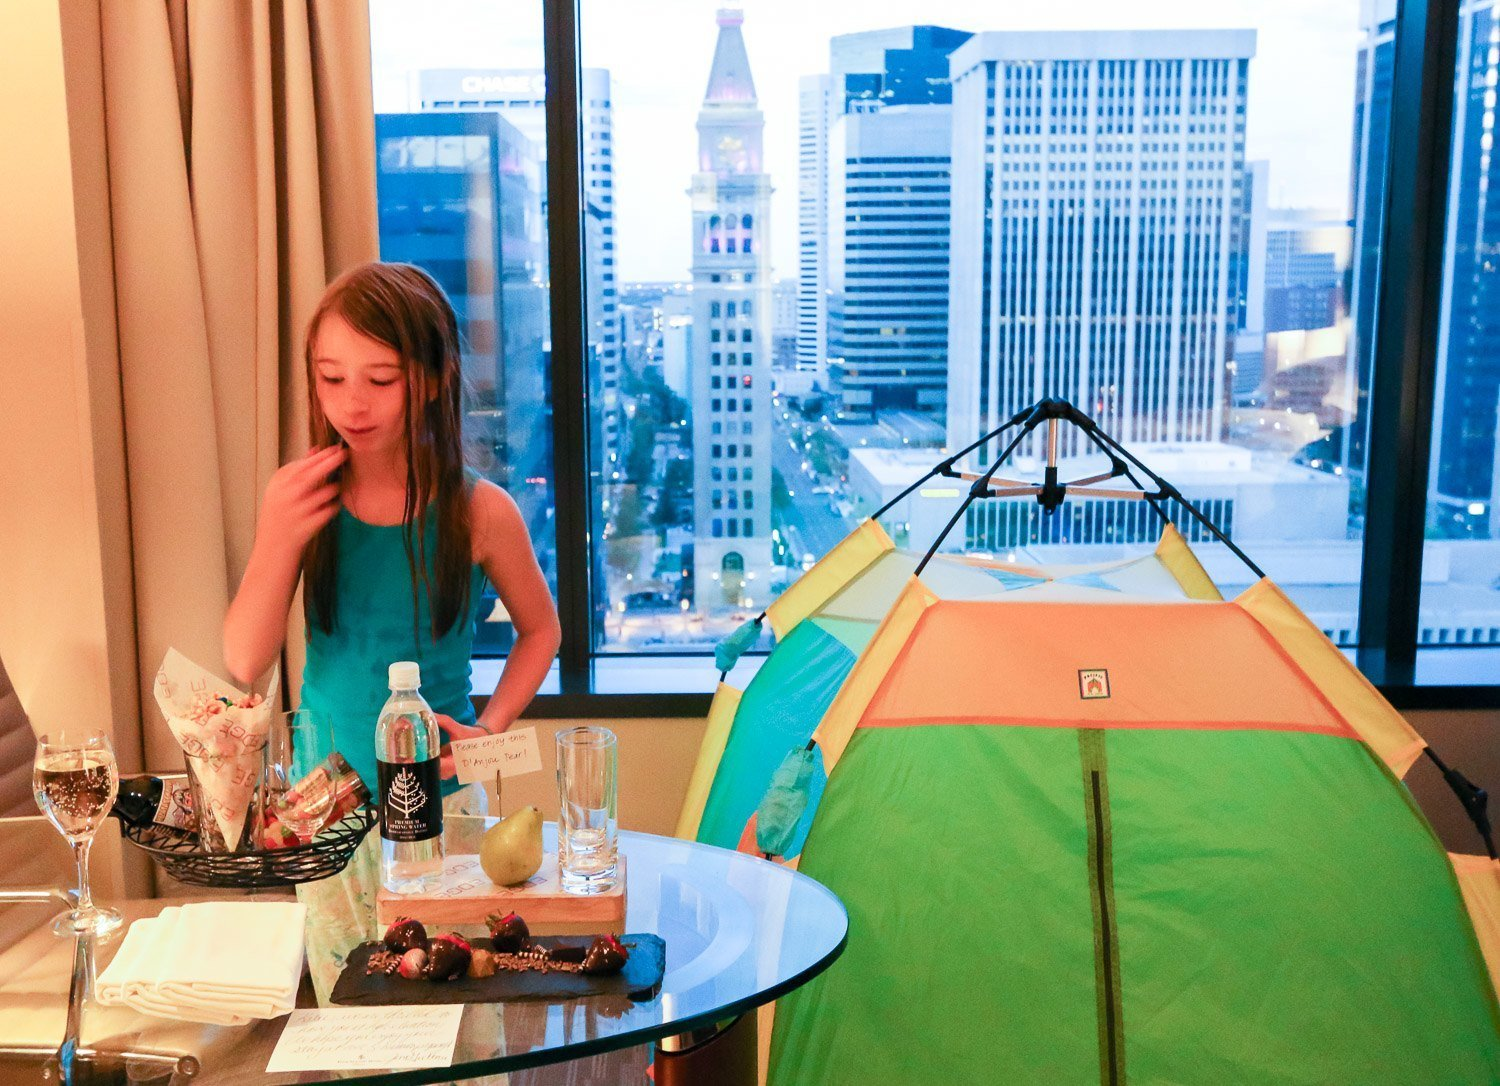 Mile High Family Luxury At Four Seasons Hotel Denver La